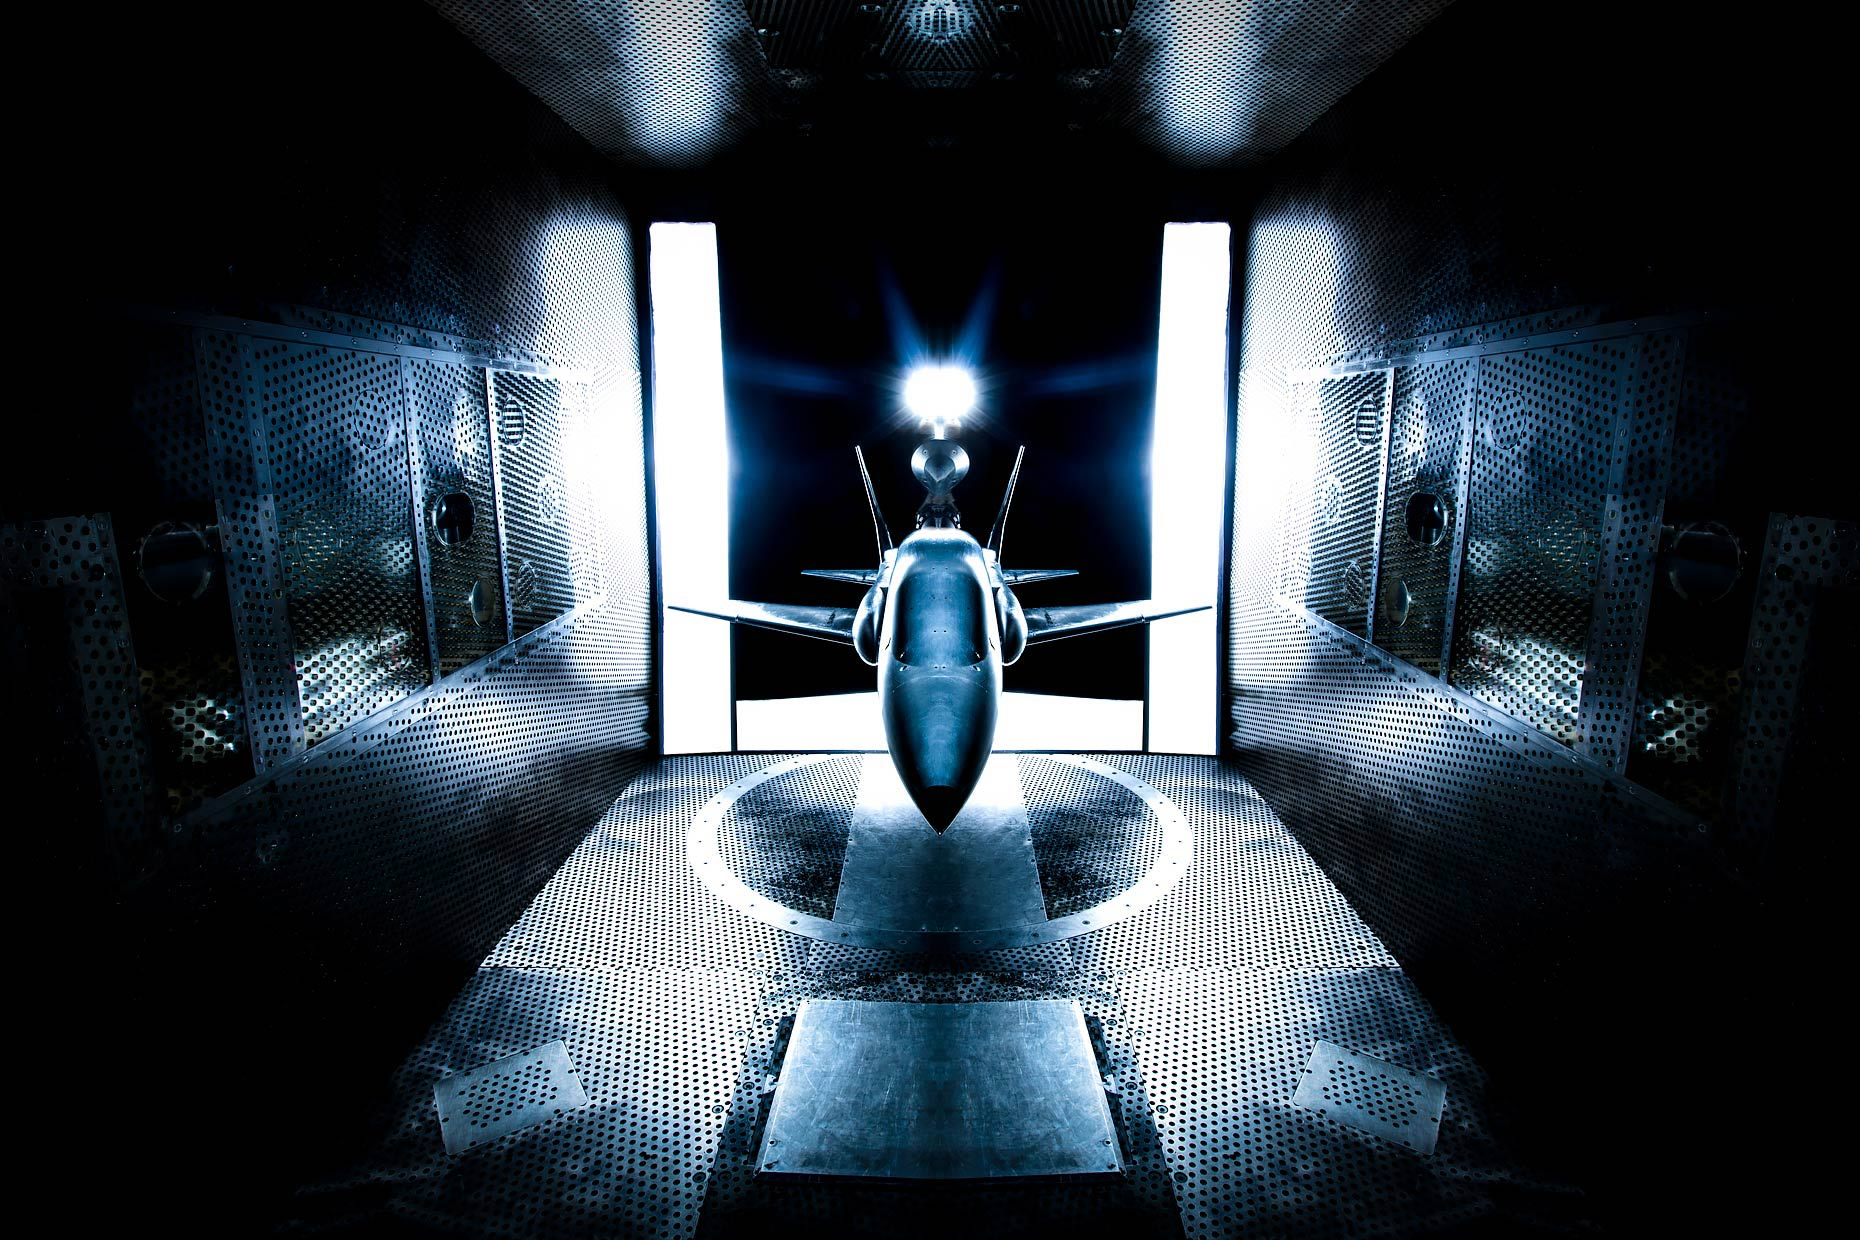 Wind tunnel aircraft | Scott Gable is an advertising and editorial photographer providing photography and video to corporate, industrial, healthcare and bio-science clients worldwide.